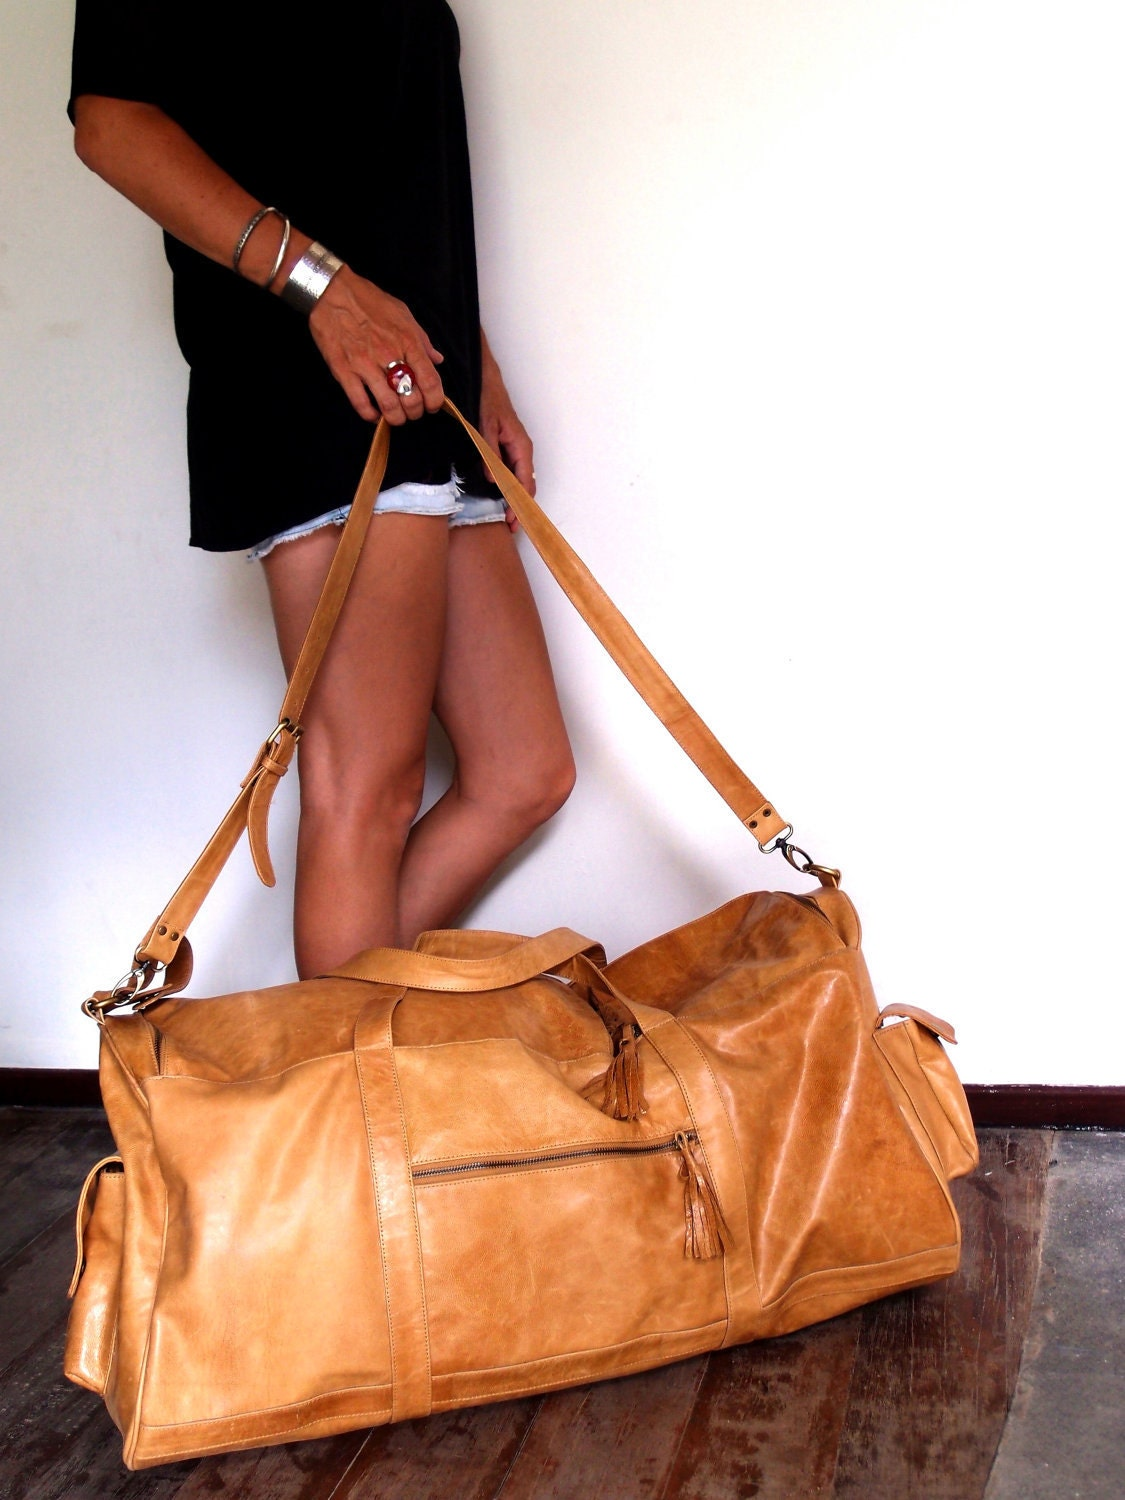 JOURNEY. Duffel bag / travel bag / leather luggage / leather